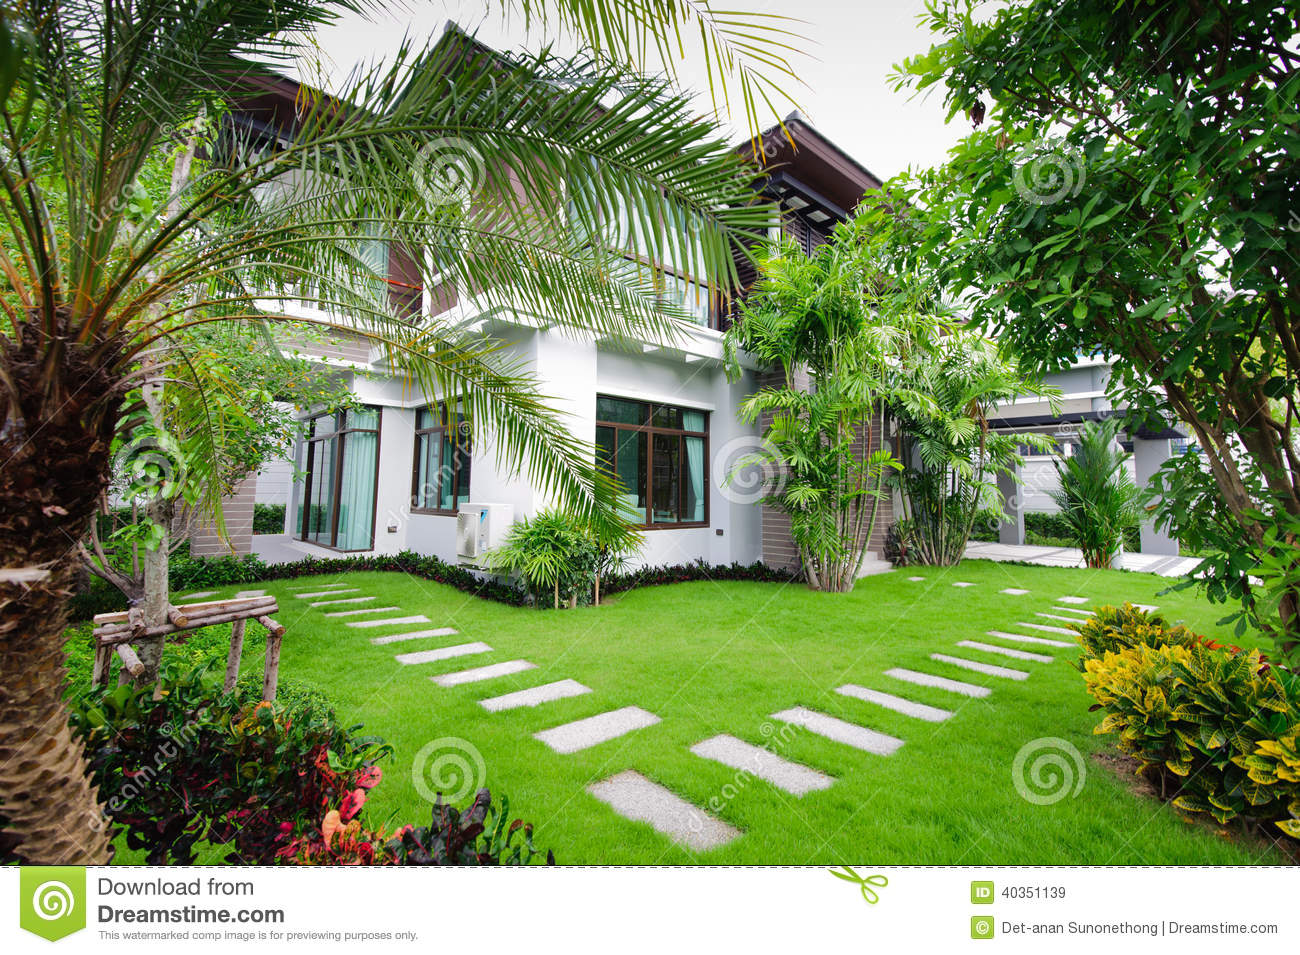 Maison moderne dans le jardin photo stock image 40351139 for La maison moderne